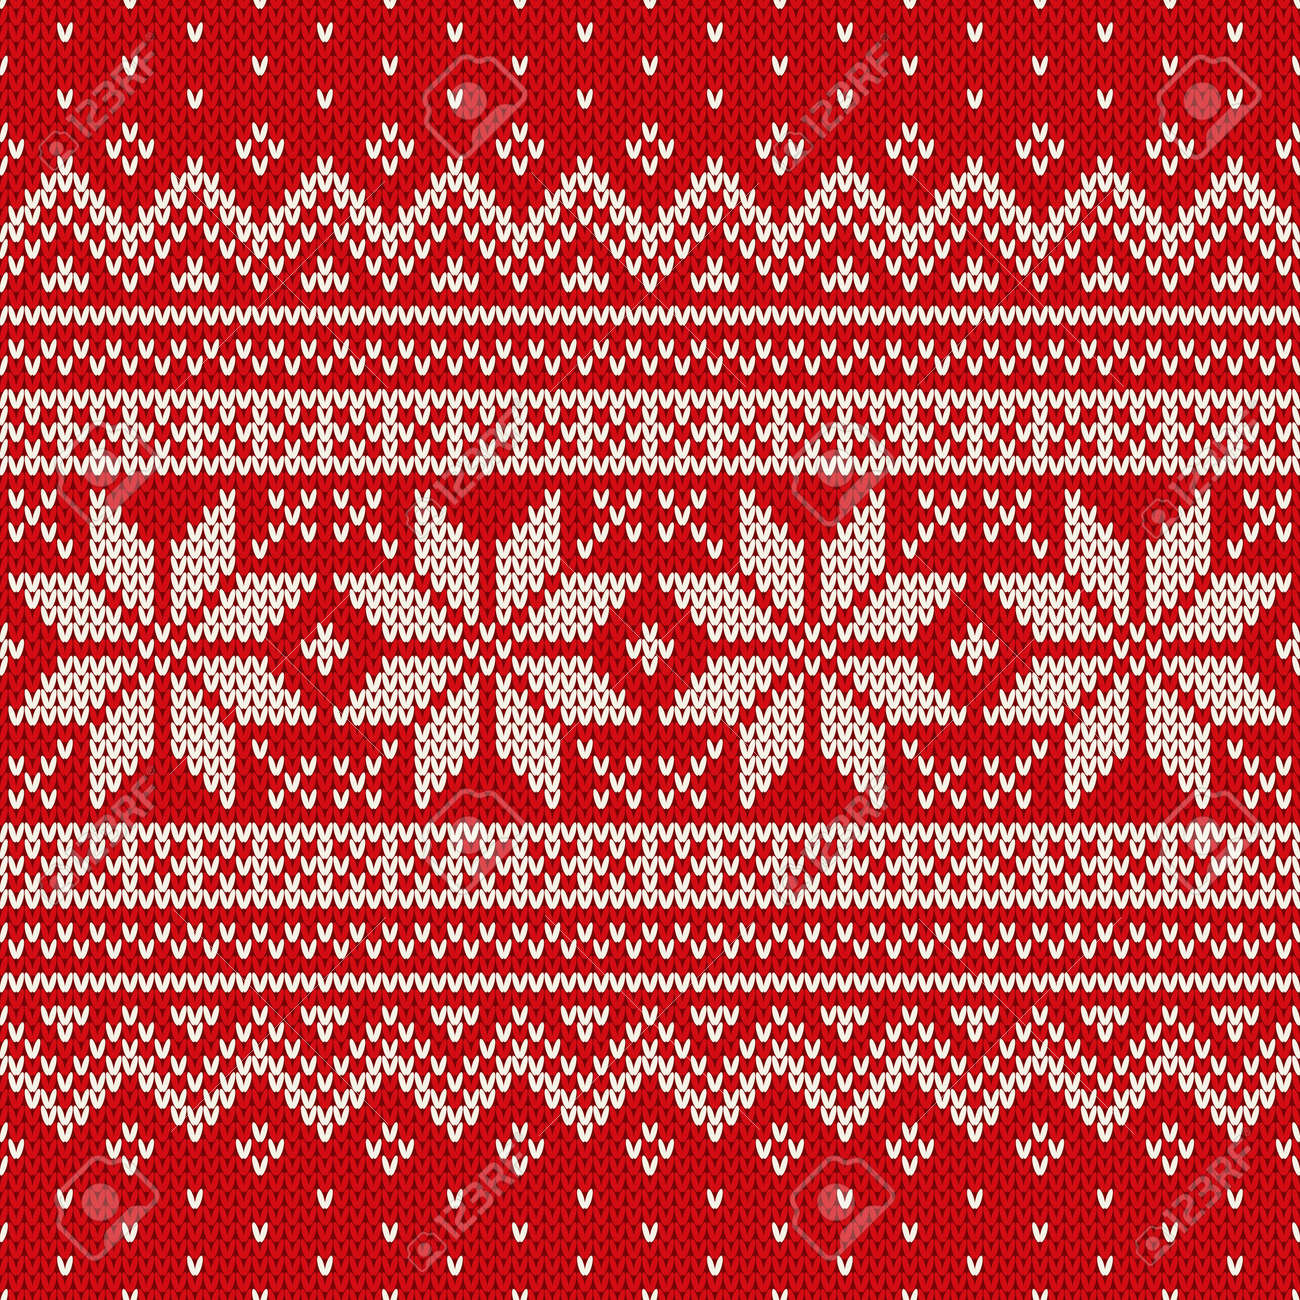 Christmas Sweater Design Seamless Pattern Royalty Free Cliparts Vectors And Stock Illustration Image 33609512